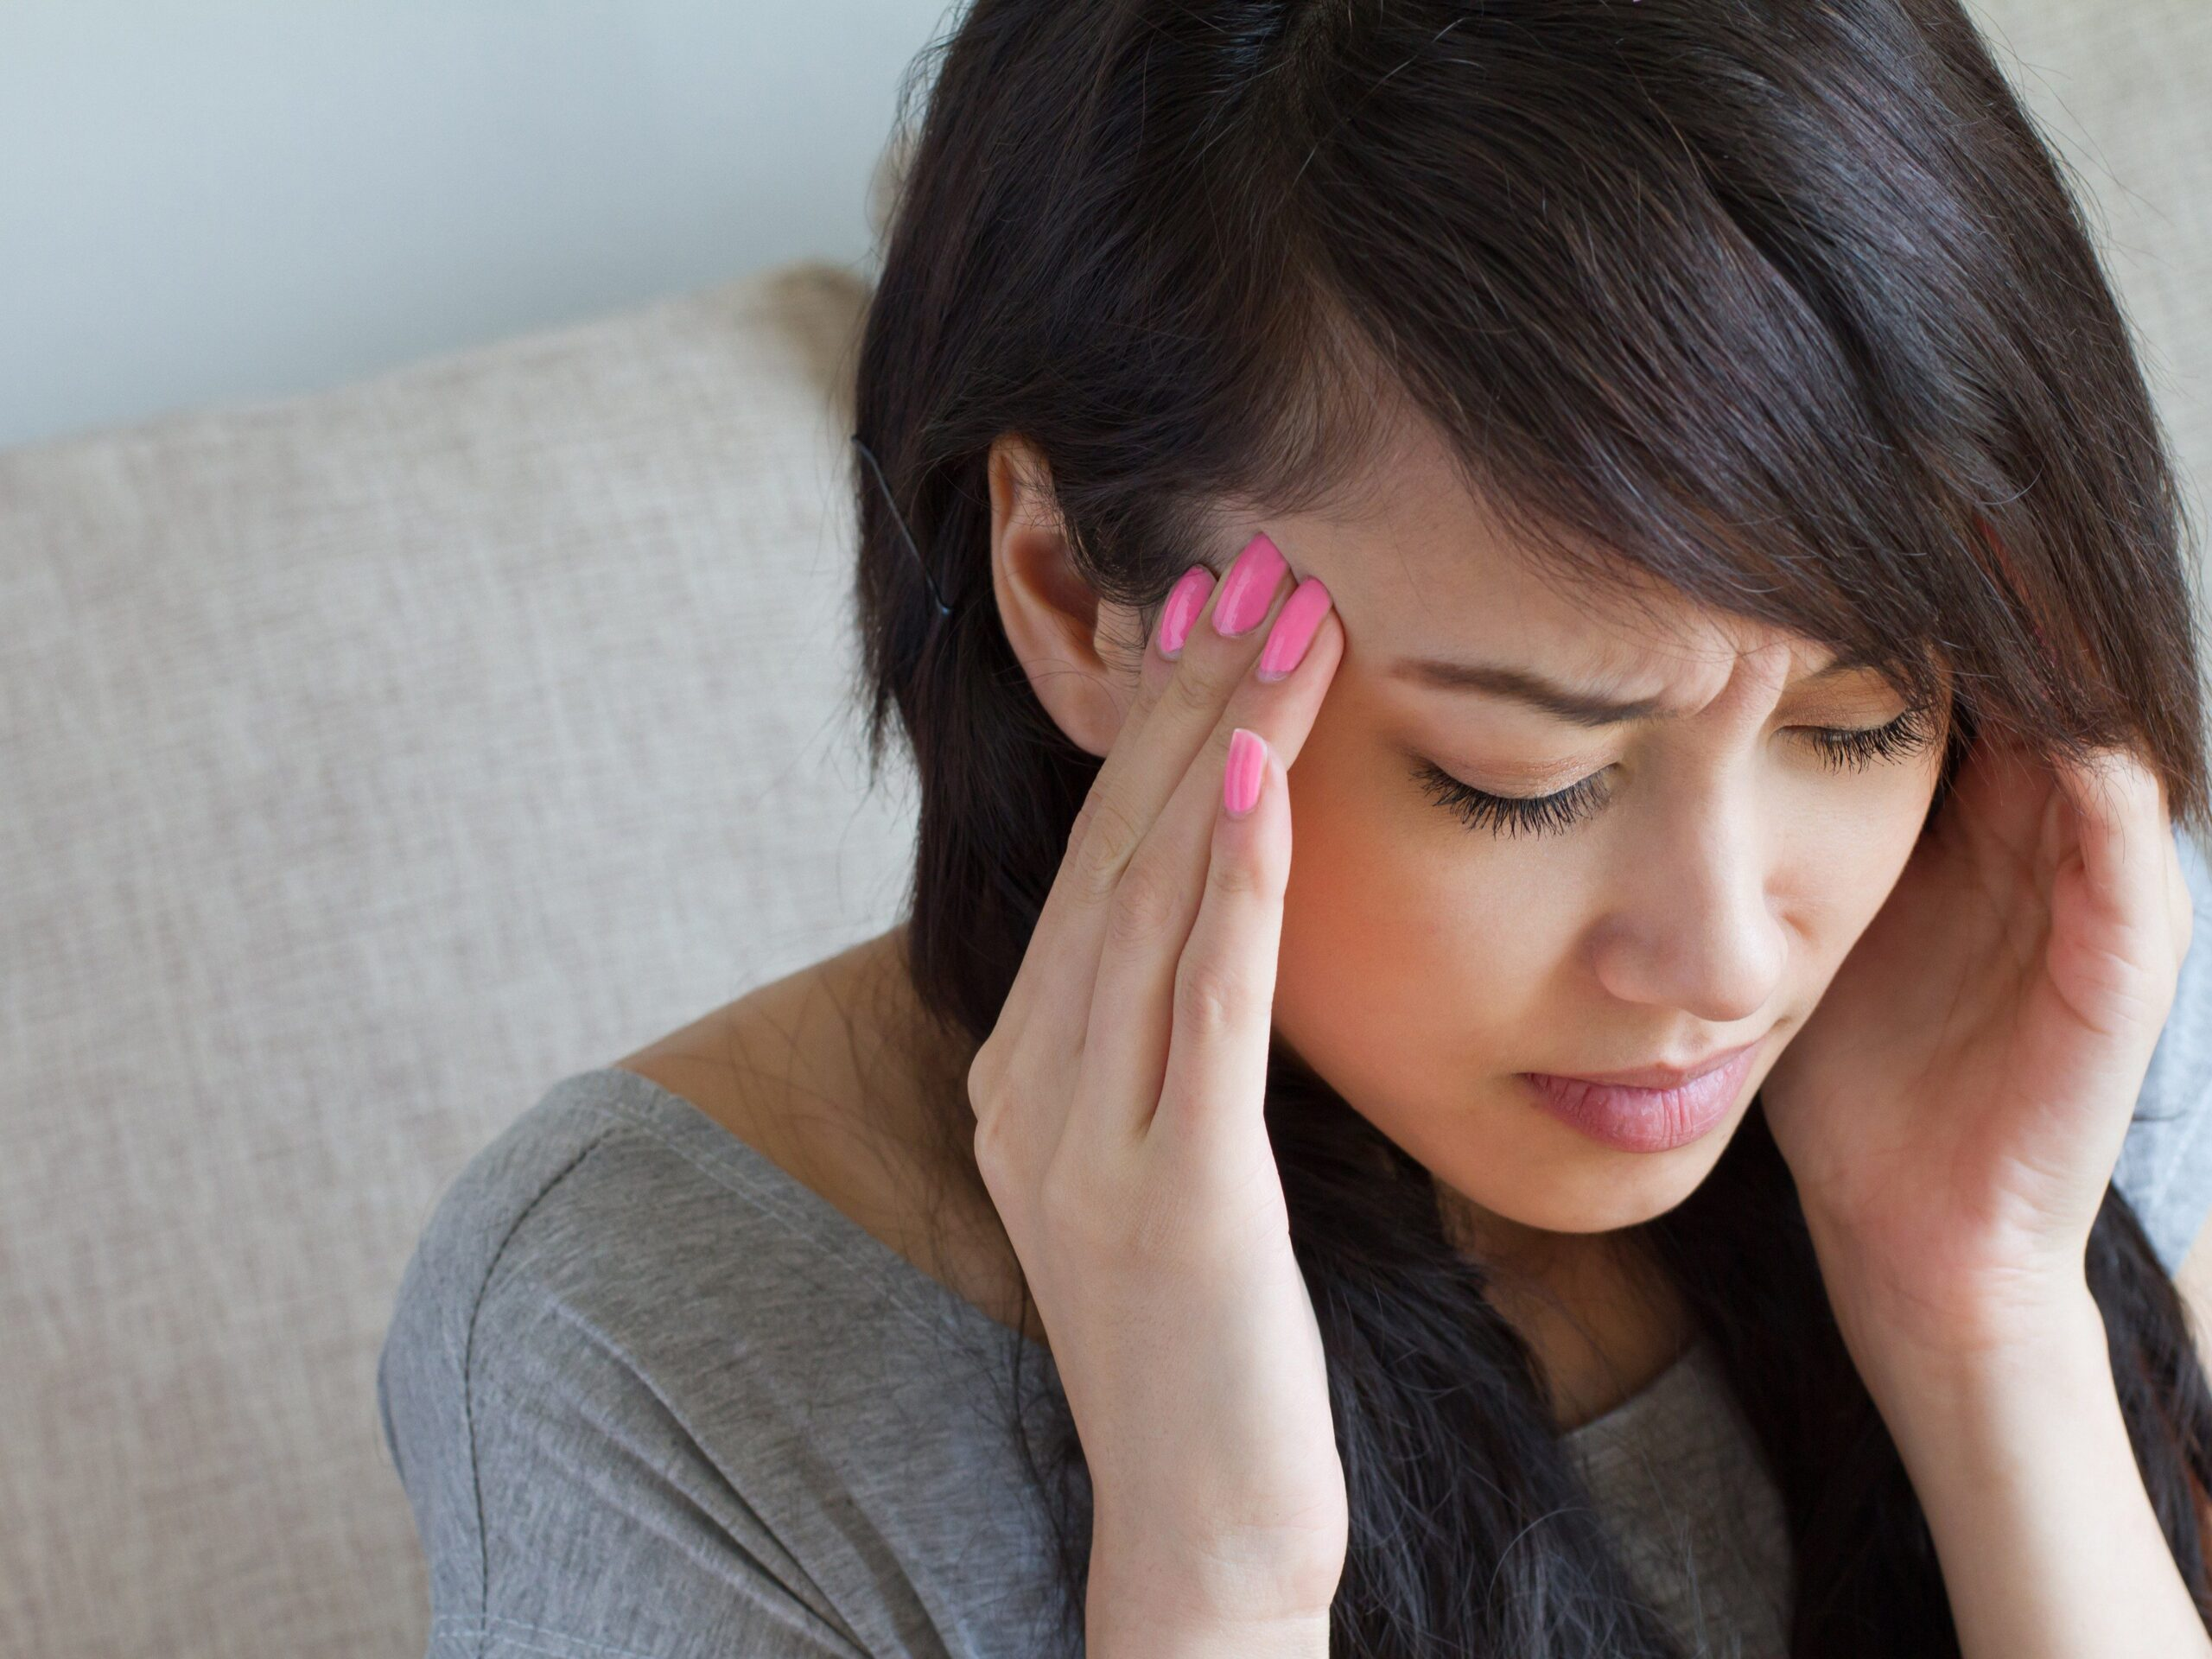 Girl with migraine image